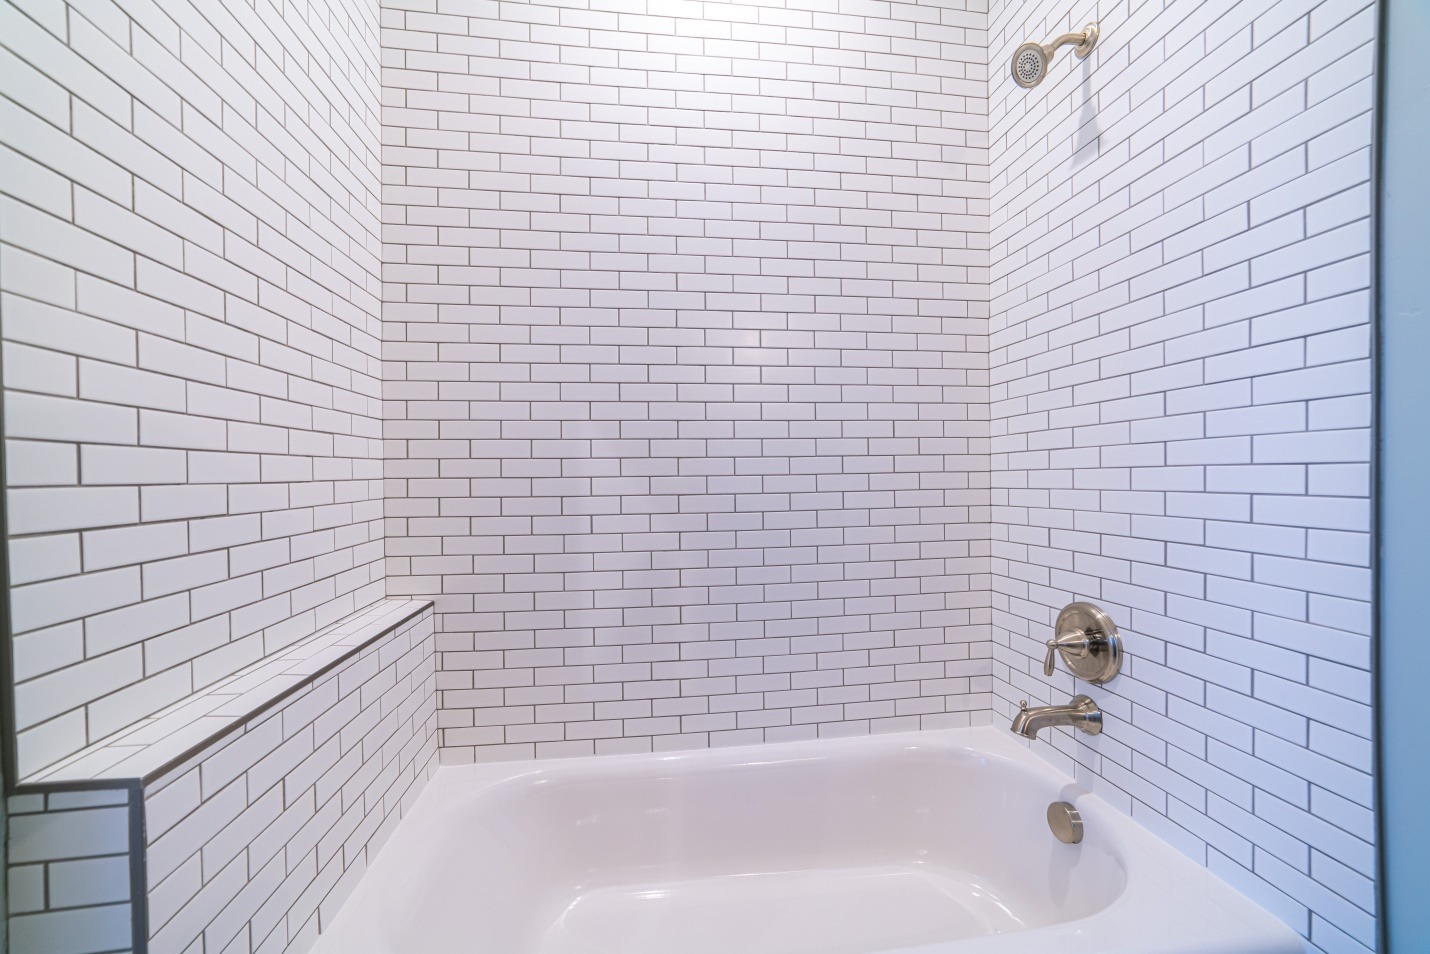 Clean white tiled shower combination tub bright interior